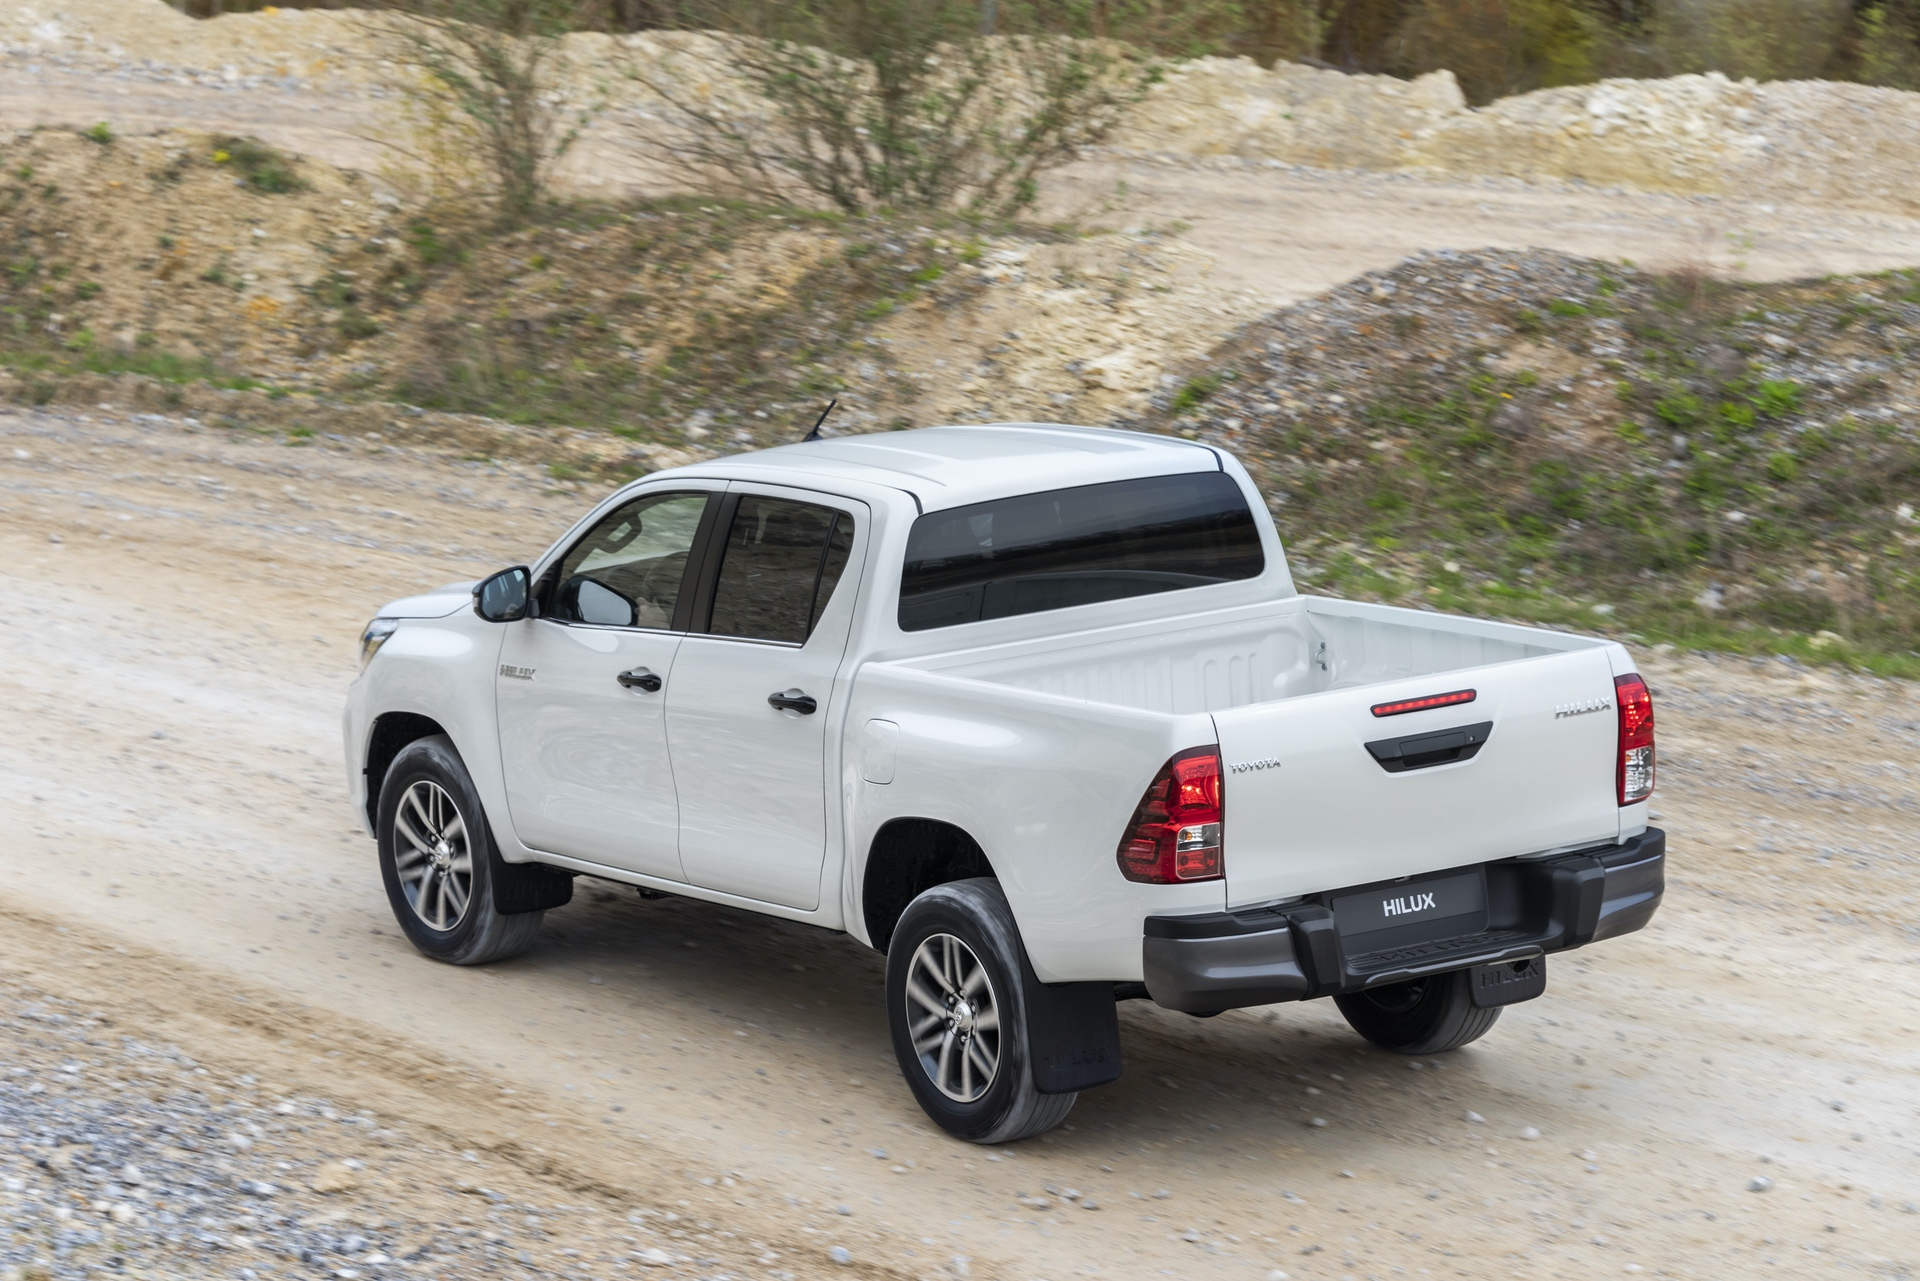 Toyota_Hilux_Special_Edition_0067